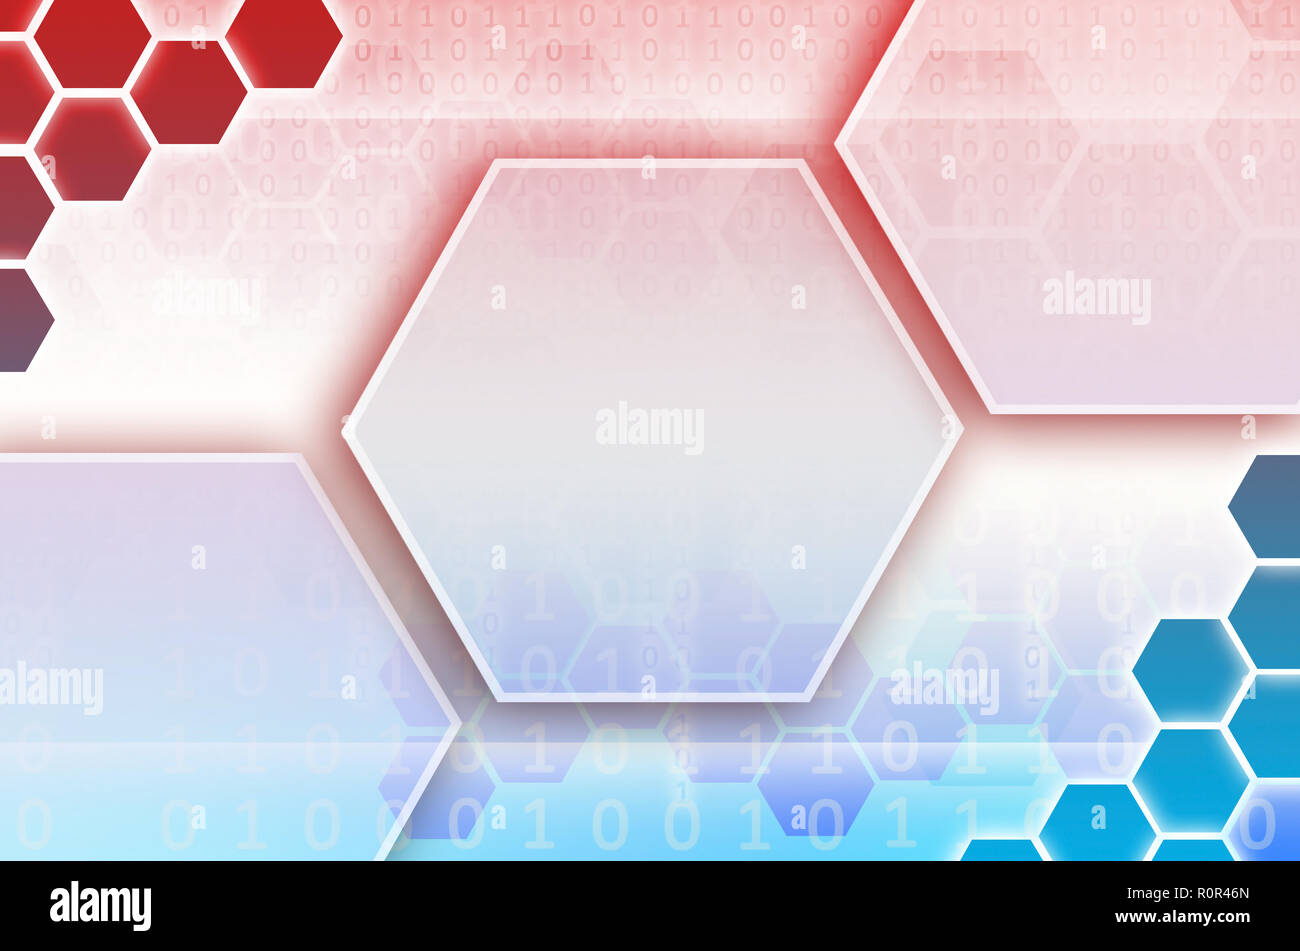 Abstract technological background consisting of a set of hexagons and other geometric shapes in blue and red color - Stock Image